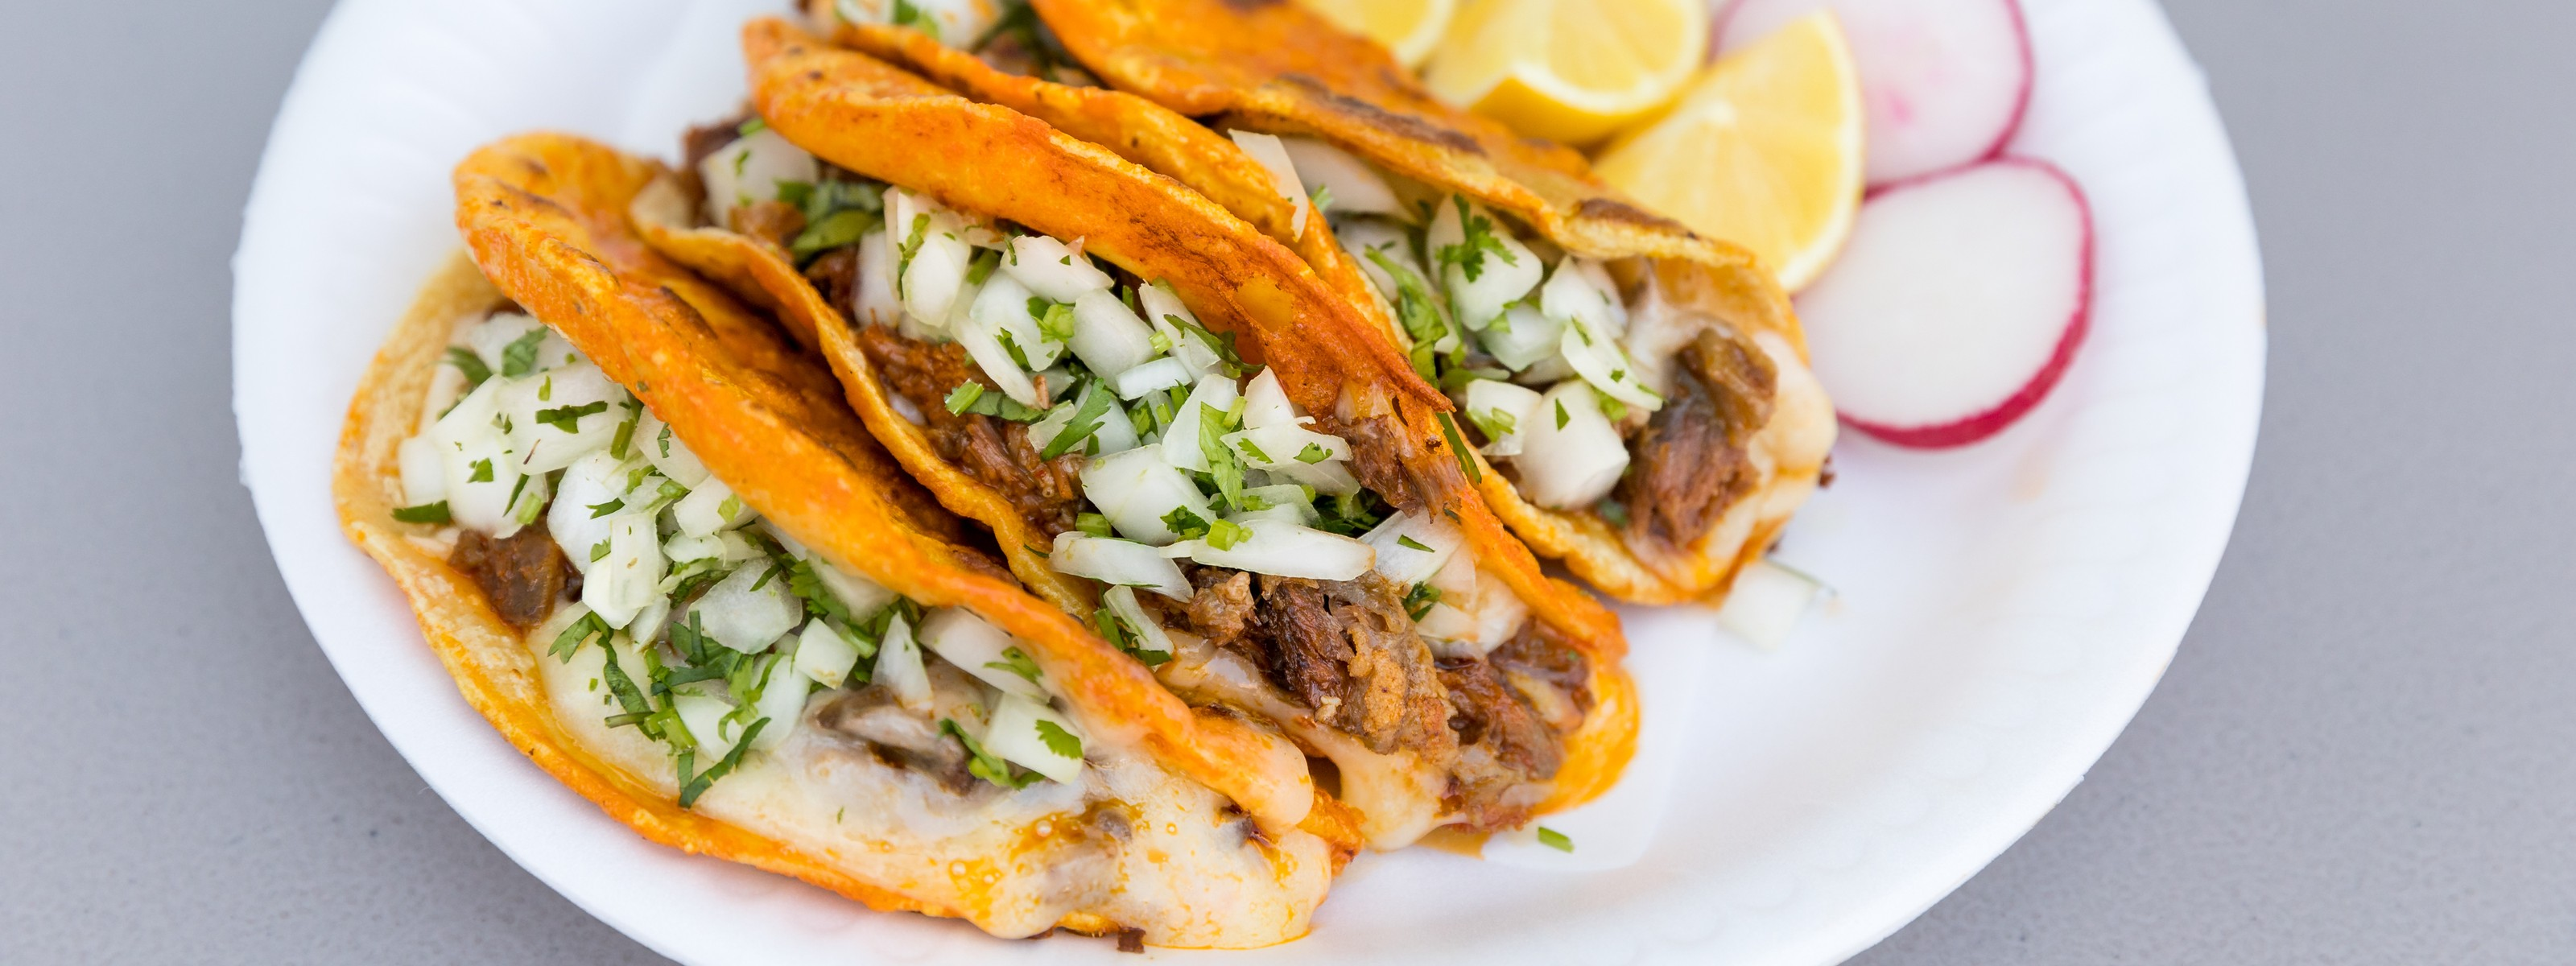 The Best Tacos In Los Angeles - Los Angeles - The Infatuation